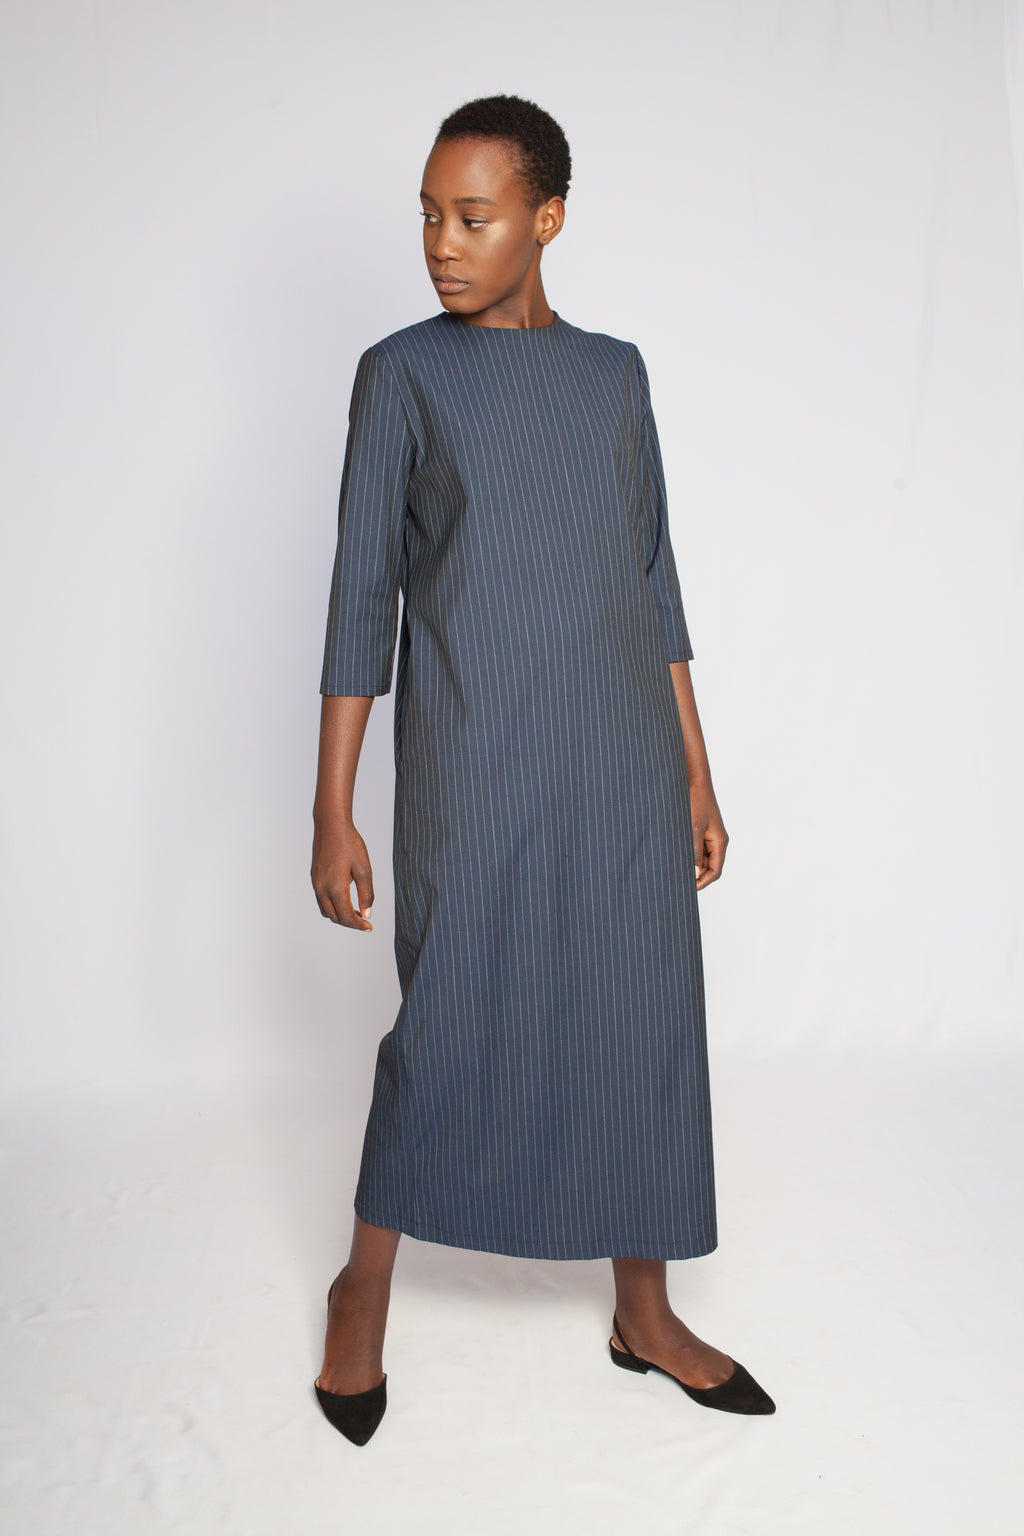 The Margot Dress Blue Striped